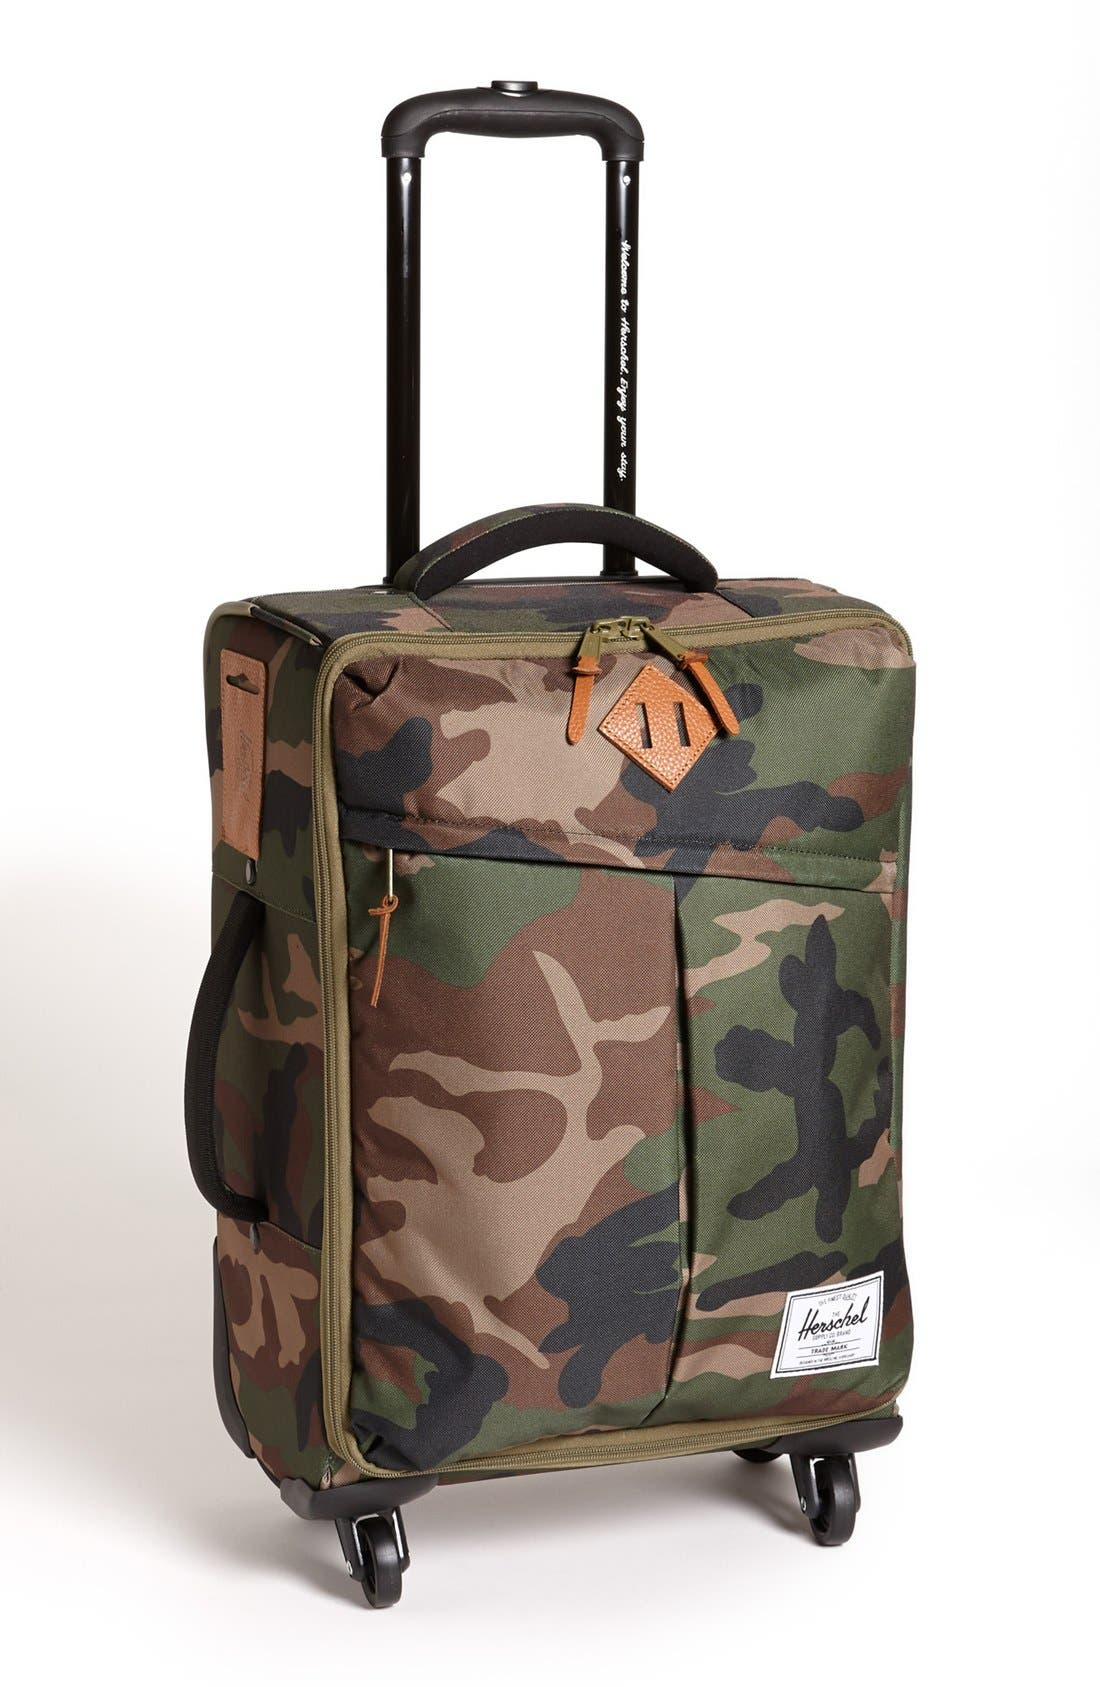 Main Image - Herschel Supply Co. 'Highland' Rolling Carry-On (19 Inch)